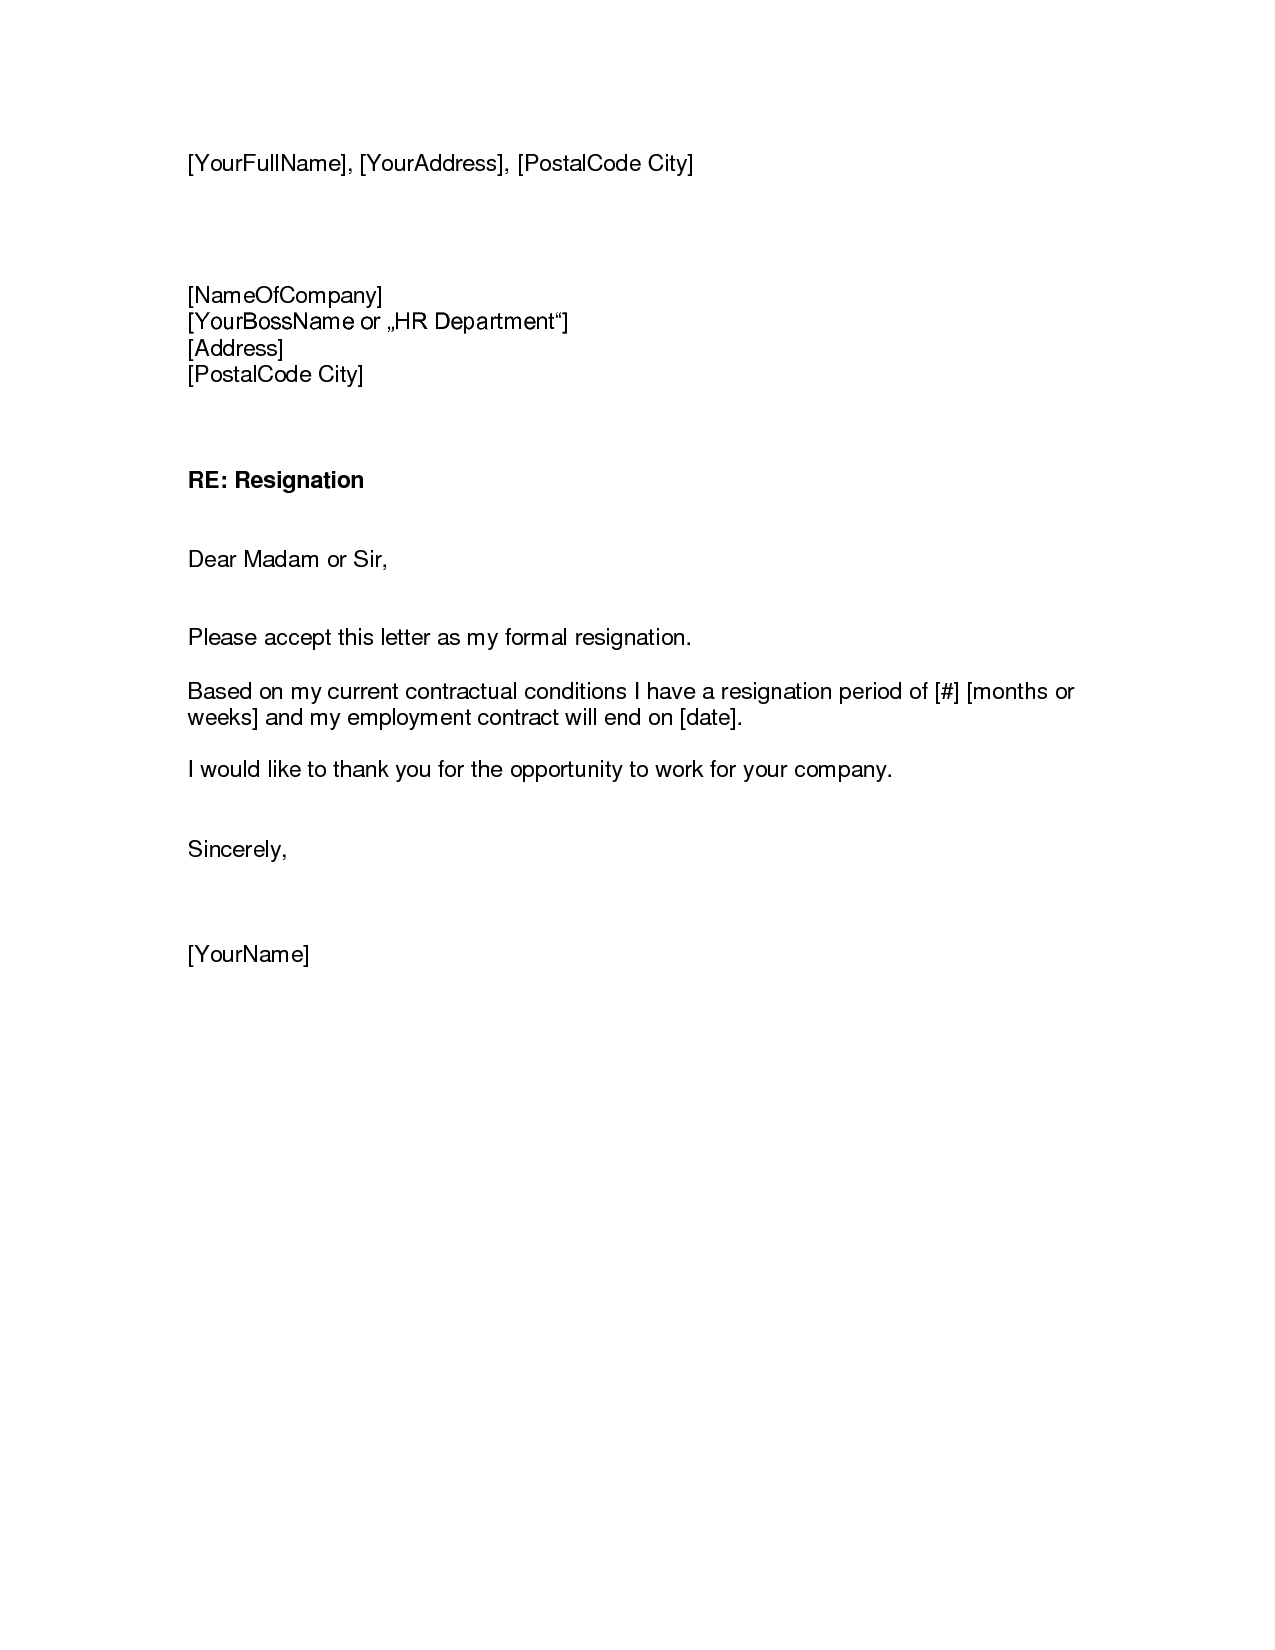 Free download resignation letterwriting a letter of resignation free download resignation letterwriting a letter of resignation email letter sample spiritdancerdesigns Image collections